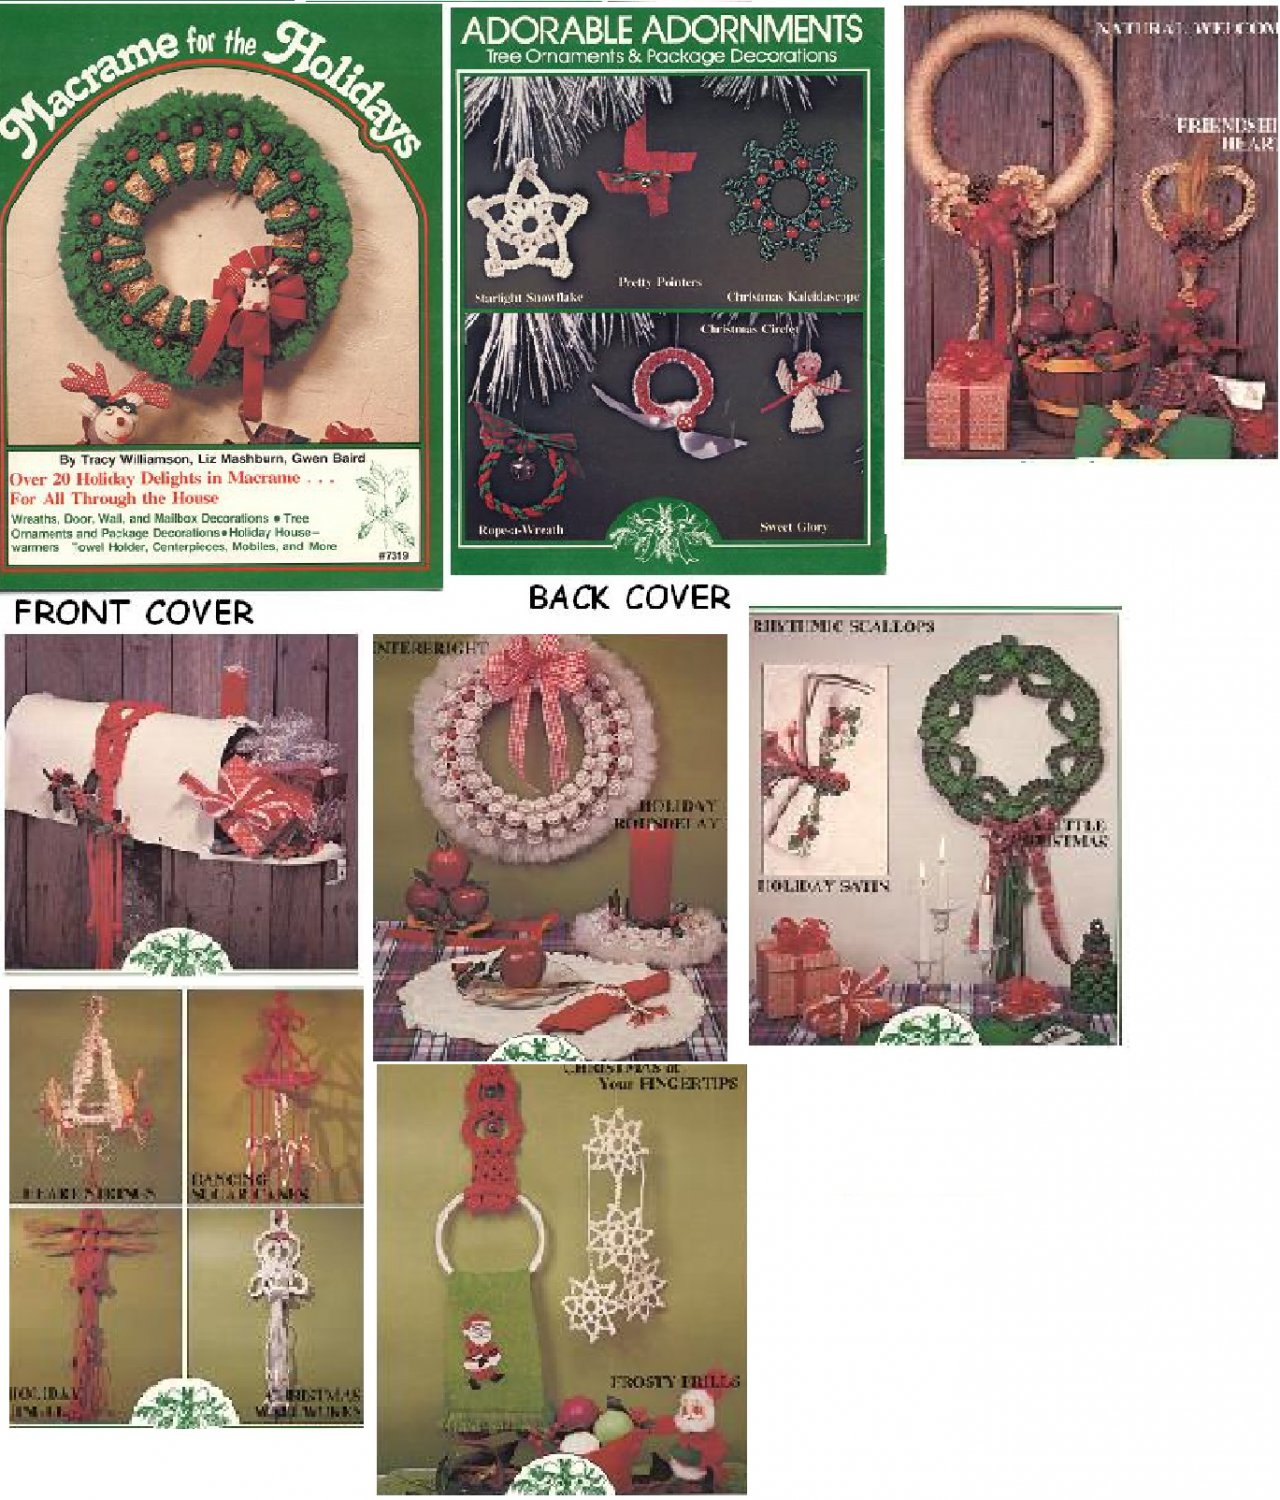 Macrame for the Holidays pattern instruction book